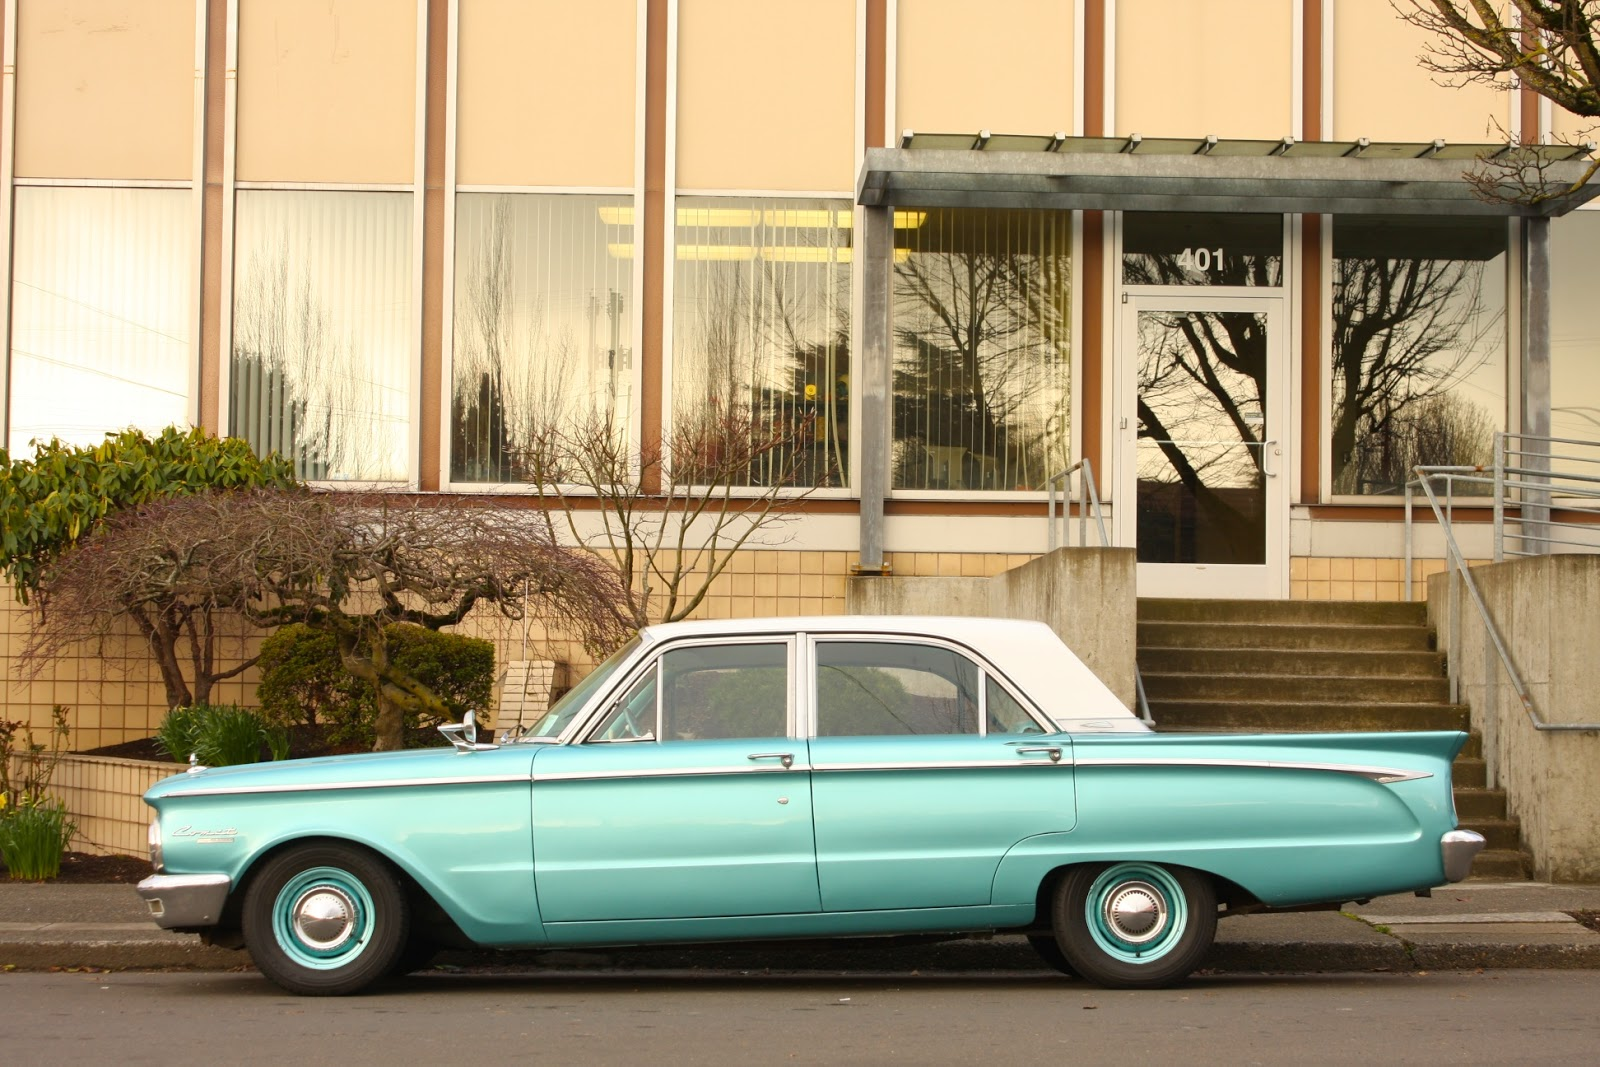 1962 Mercury Comet Custom.